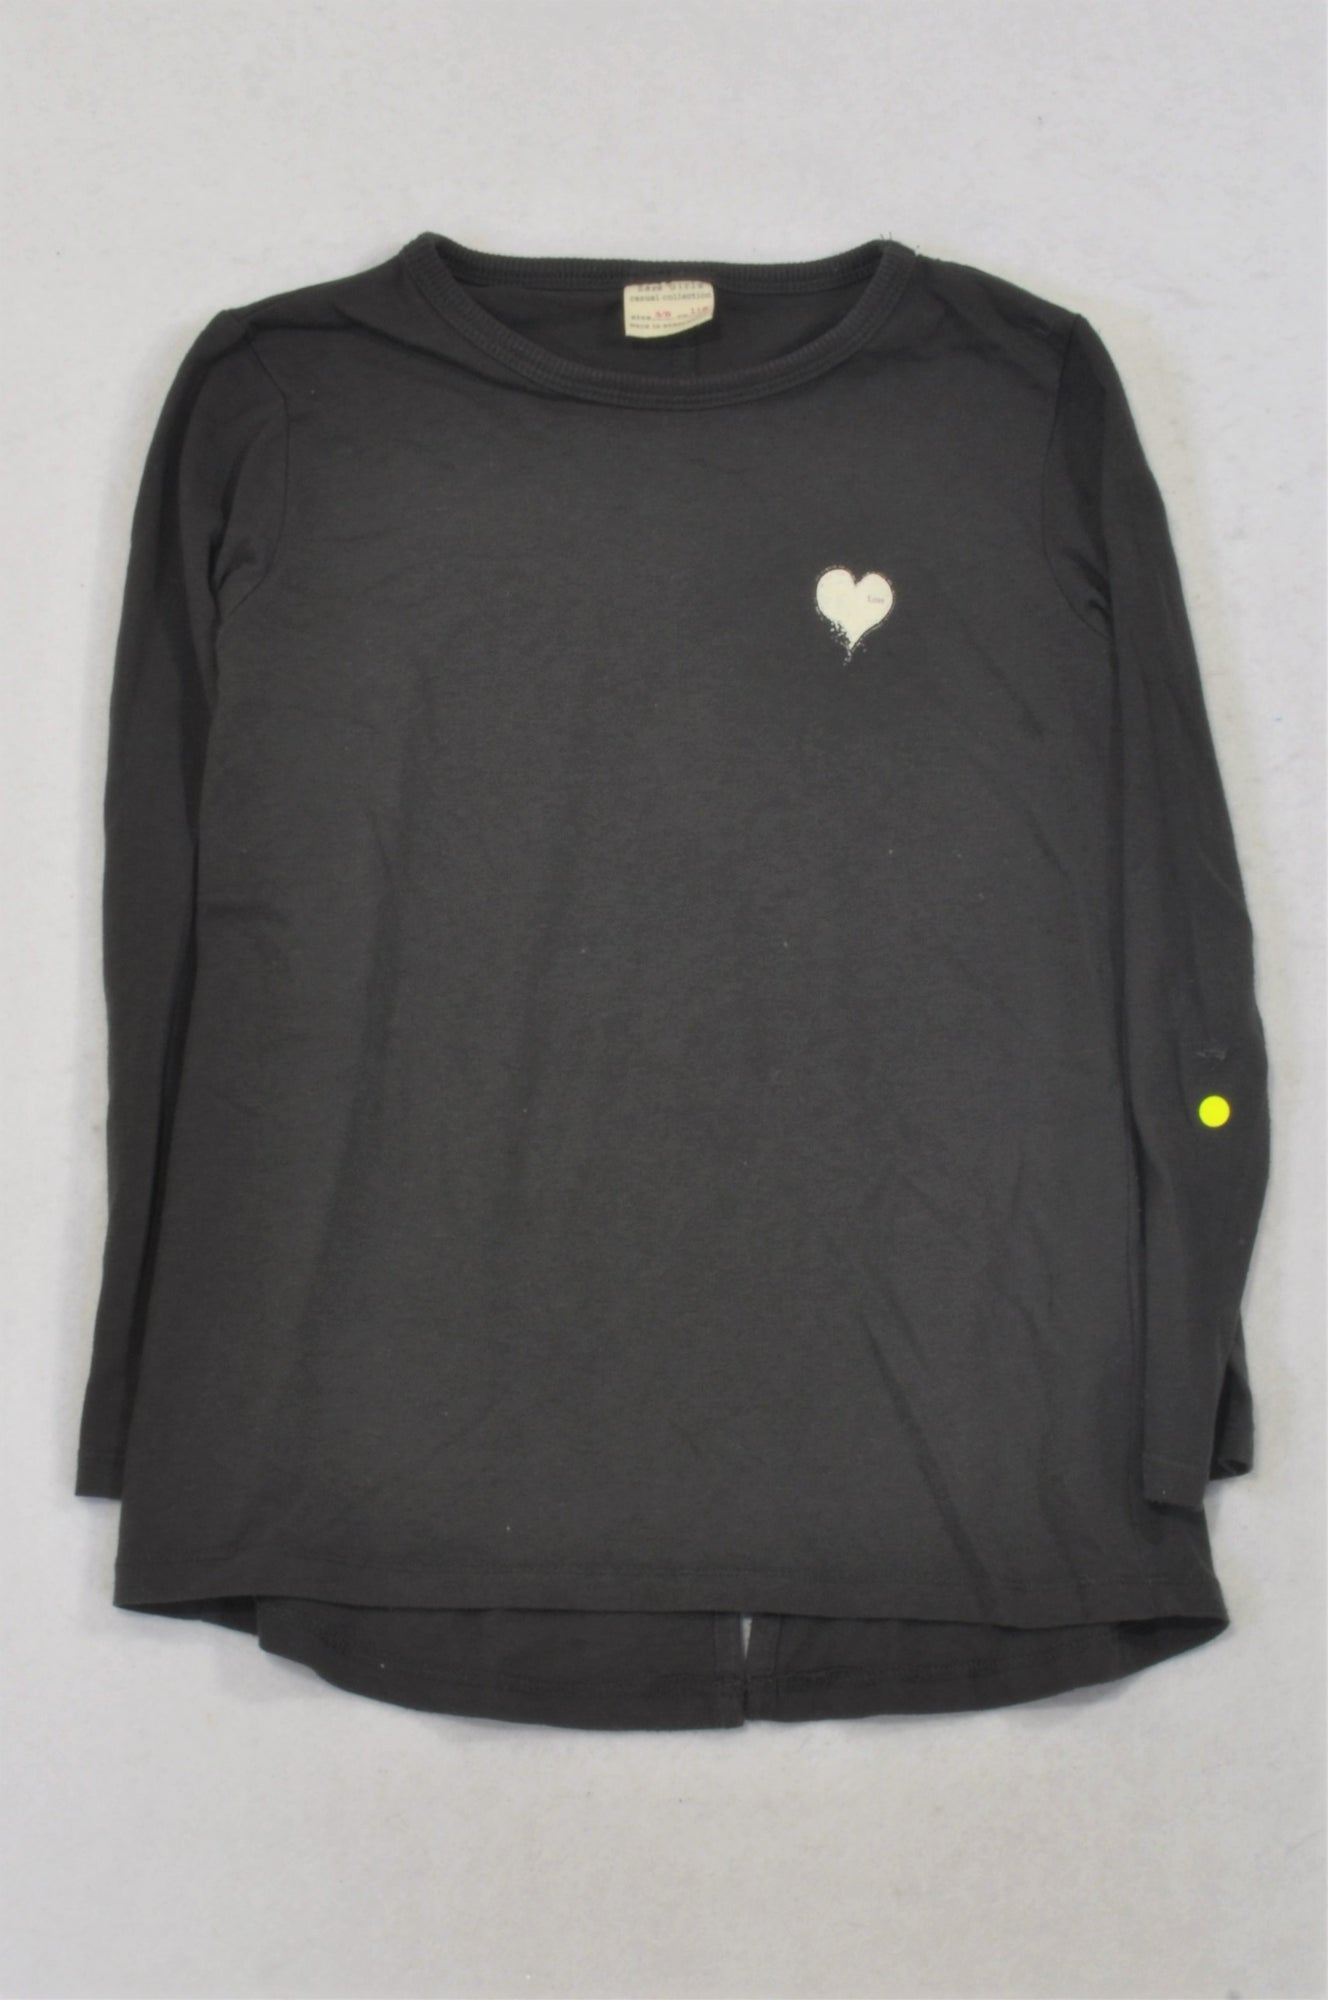 c678823e Zara Dark Grey Heart T-shirt Girls 5-6 years – Once More